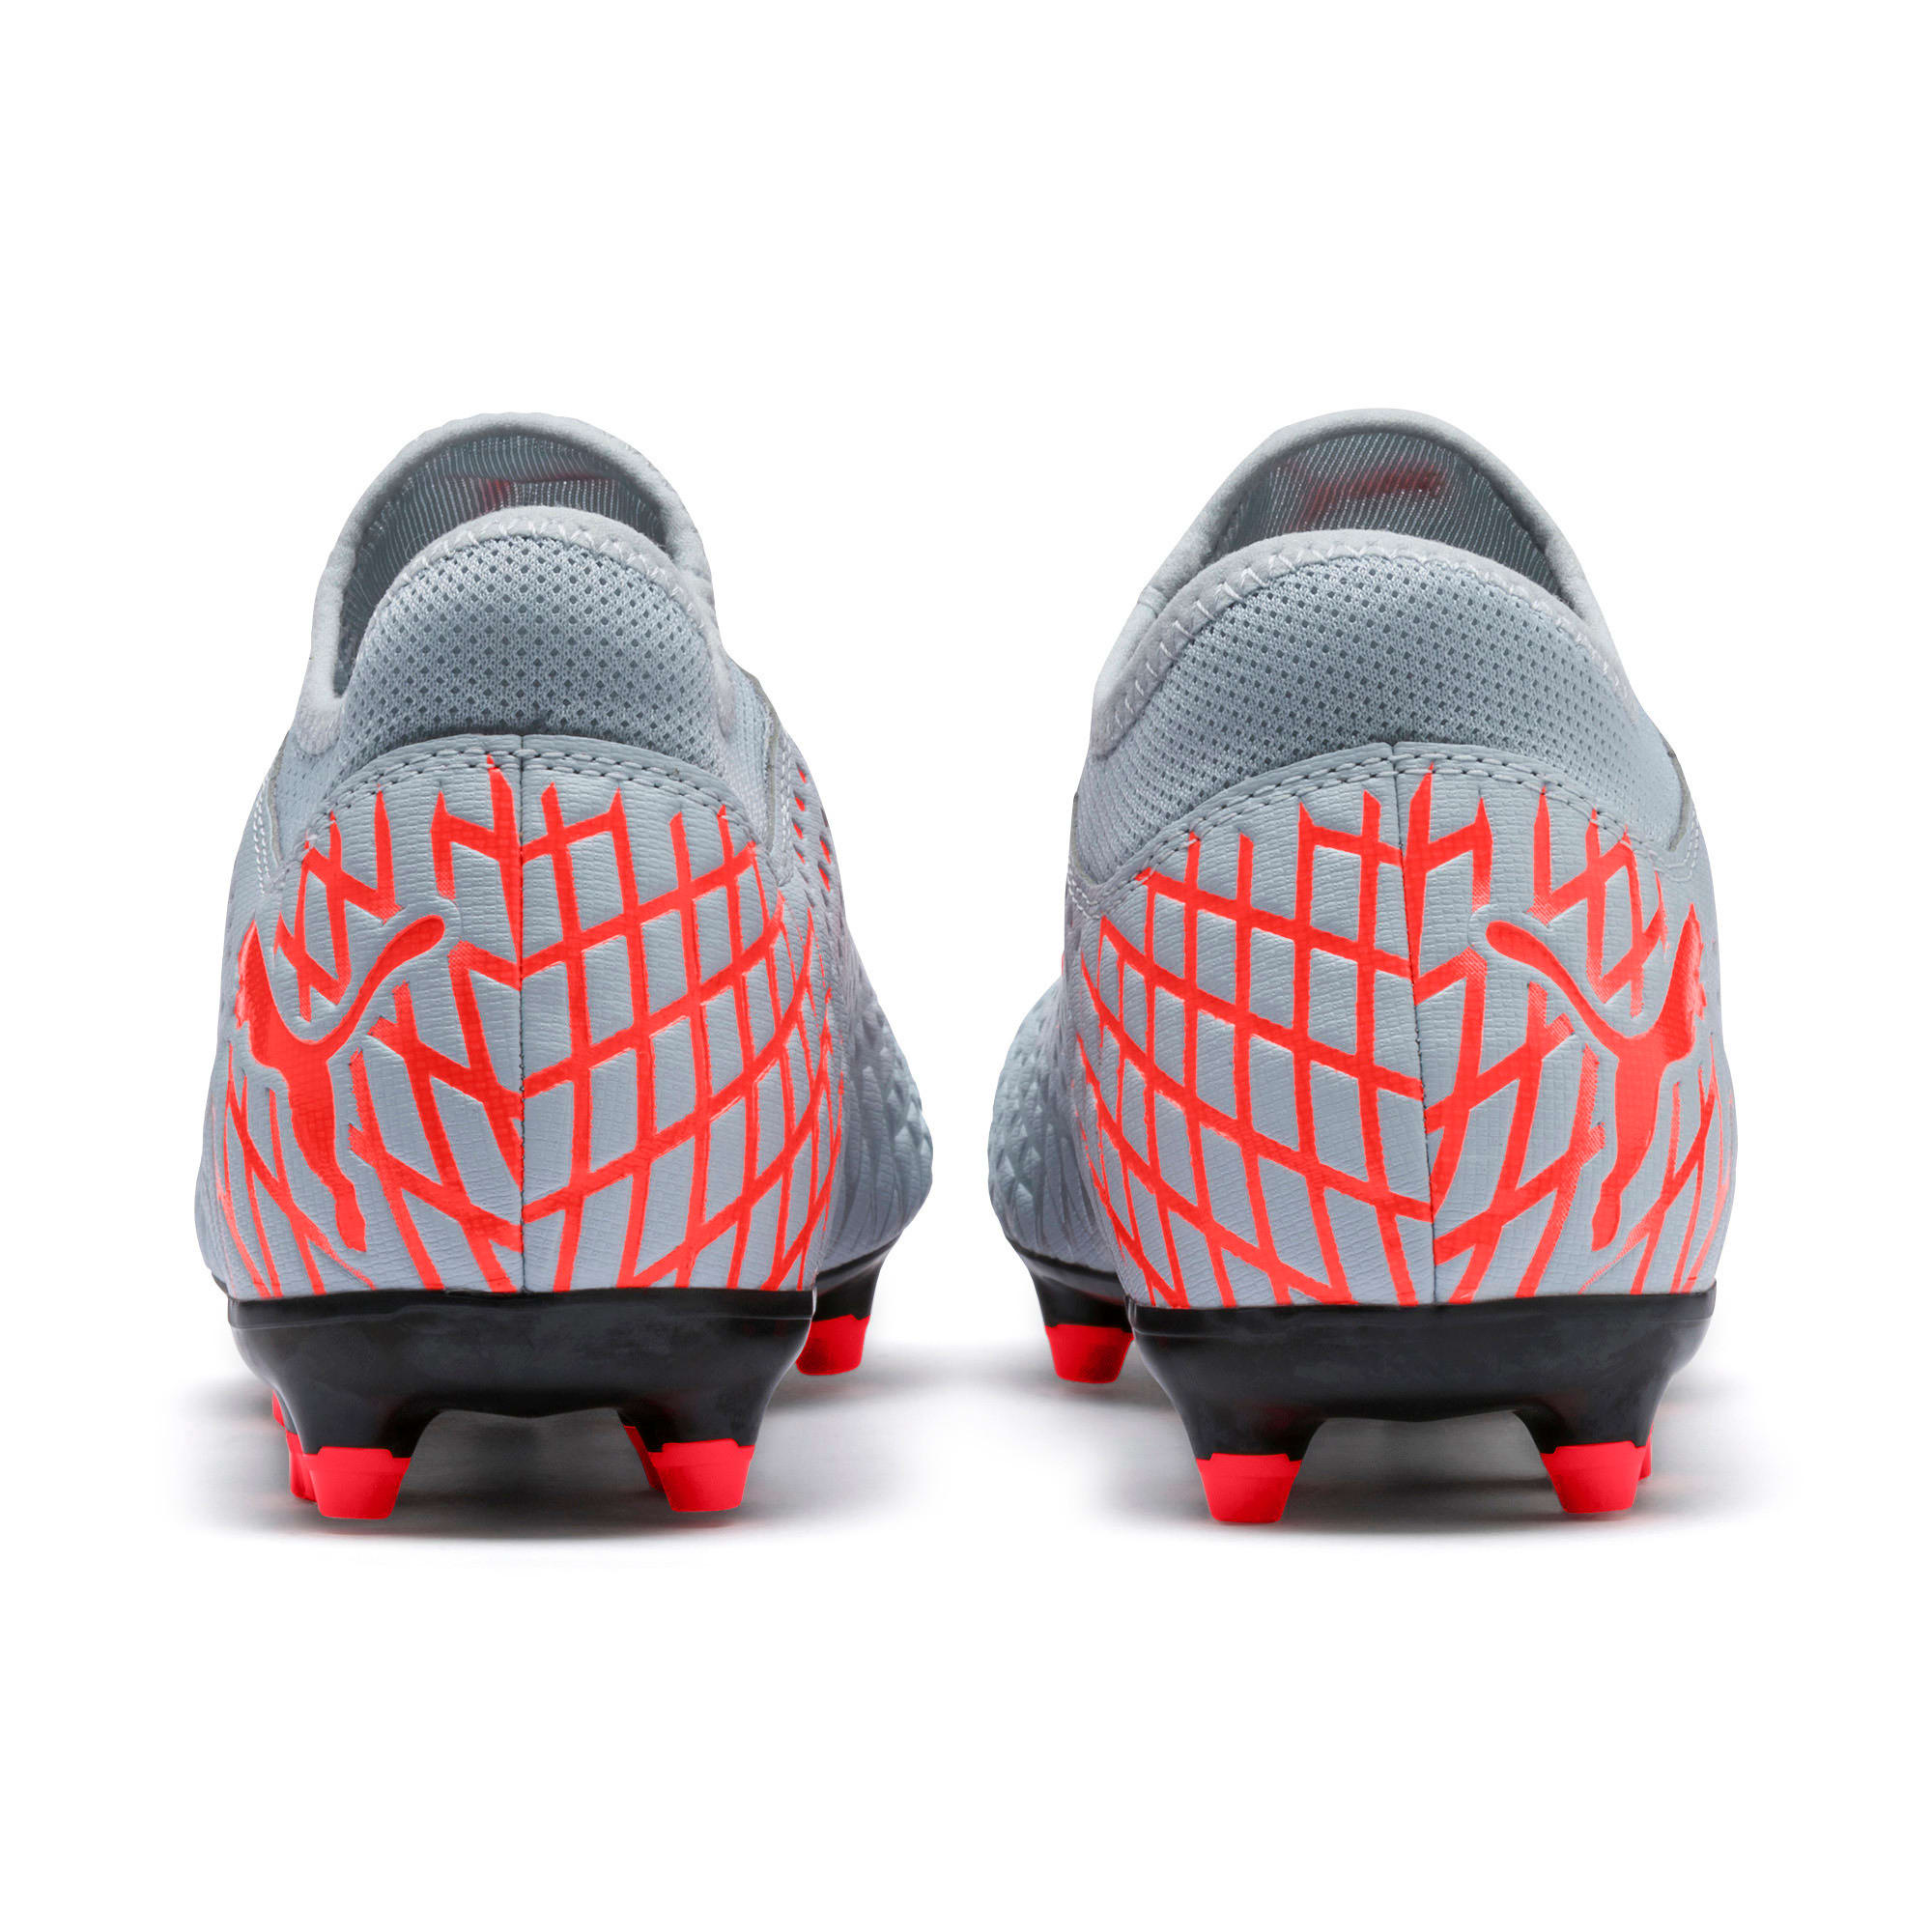 Anteprima 4 di FUTURE 4.4 FG/AG Men's Football Boots, Glacial Blue-Nrgy Red, medio